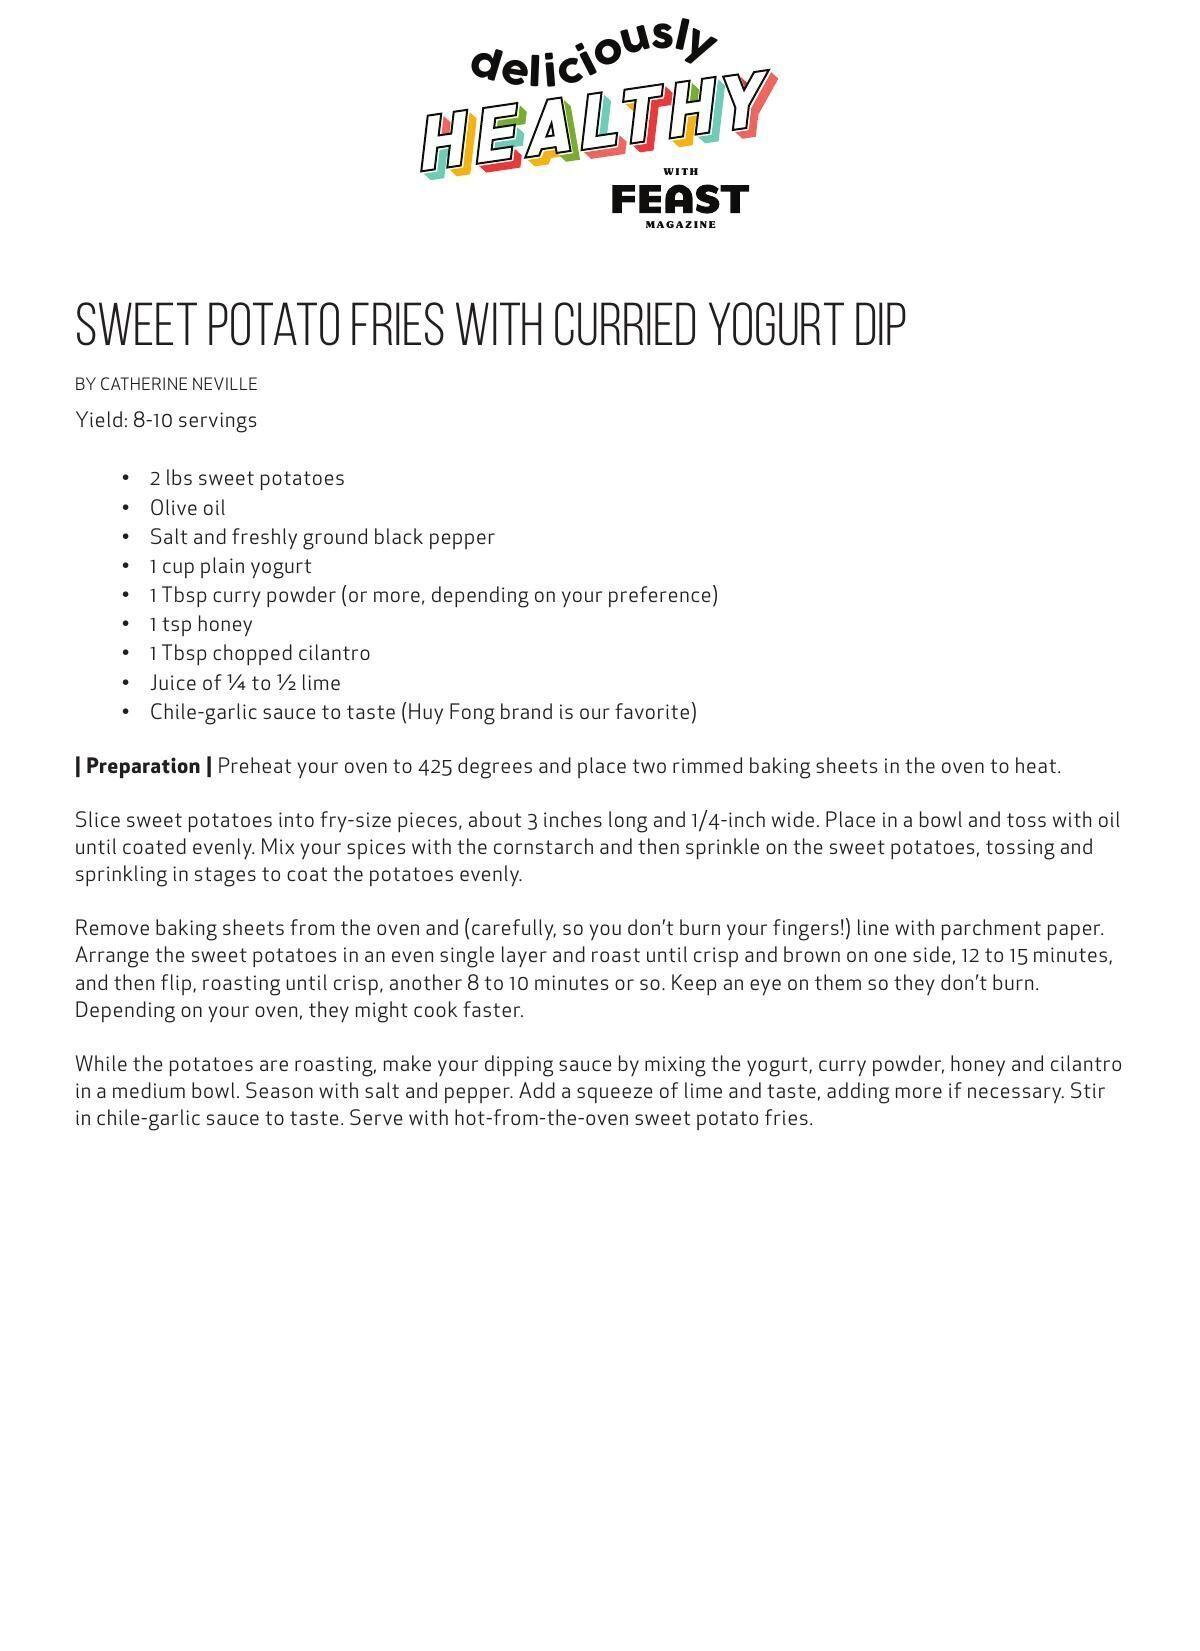 Download this sweet potato fries and curried yogurt dip recipe